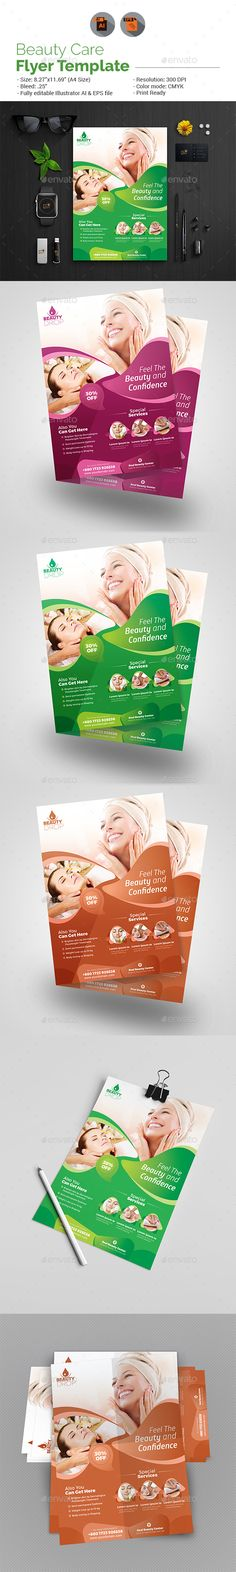 Beauty Care Flyer Template — Vector EPS #comb #fashion • Download ➝ https://graphicriver.net/item/beauty-care-flyer-template/19062322?ref=pxcr